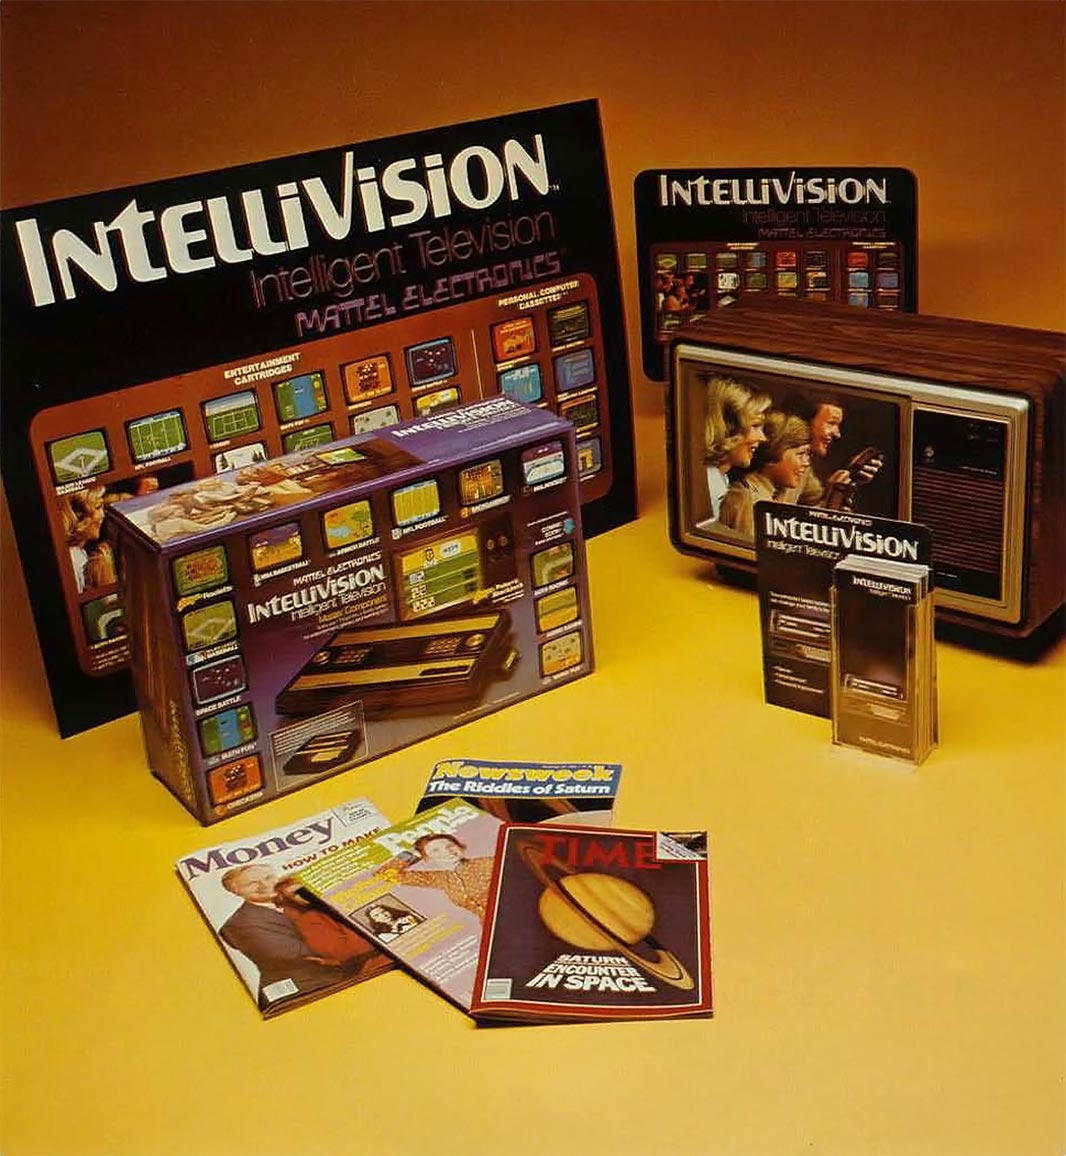 Packaging and advertising materials for the Mattel Intellivision console video game